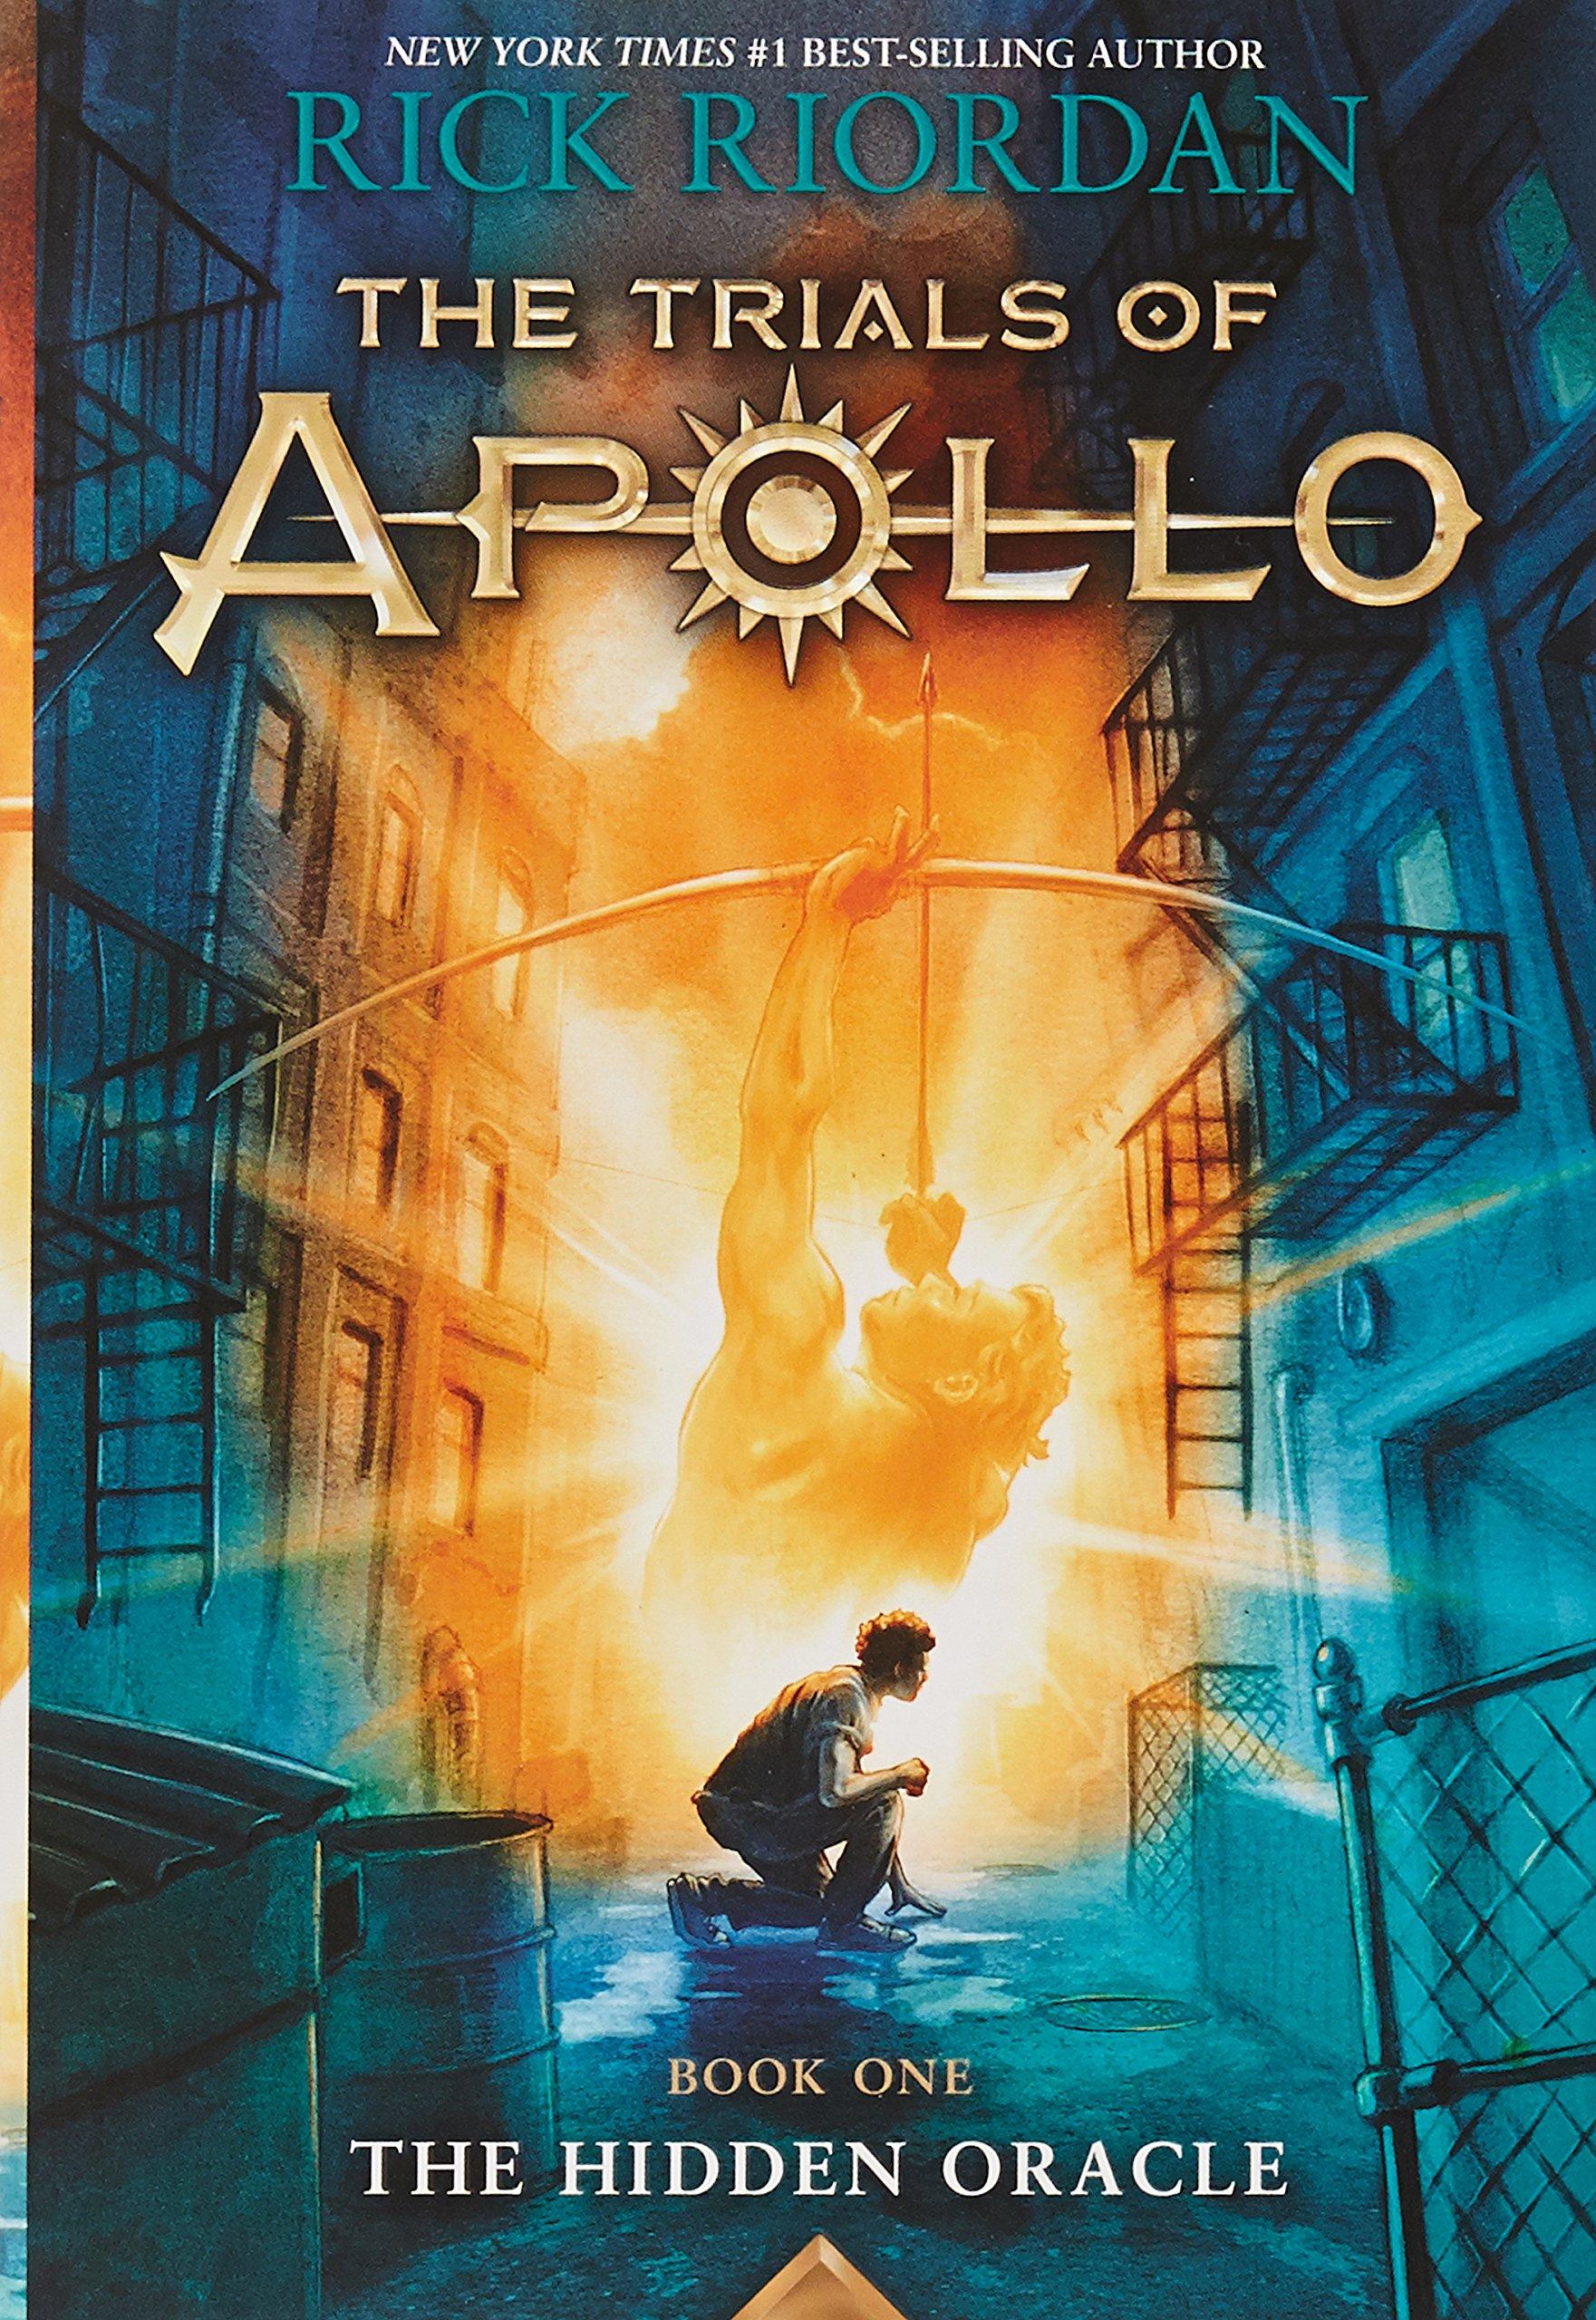 Buy The Trials of Apollo Book One The Hidden Oracle: 1 (Trials of Apollo,  1) Book Online at Low Prices in India | The Trials of Apollo Book One The  Hidden Oracle: